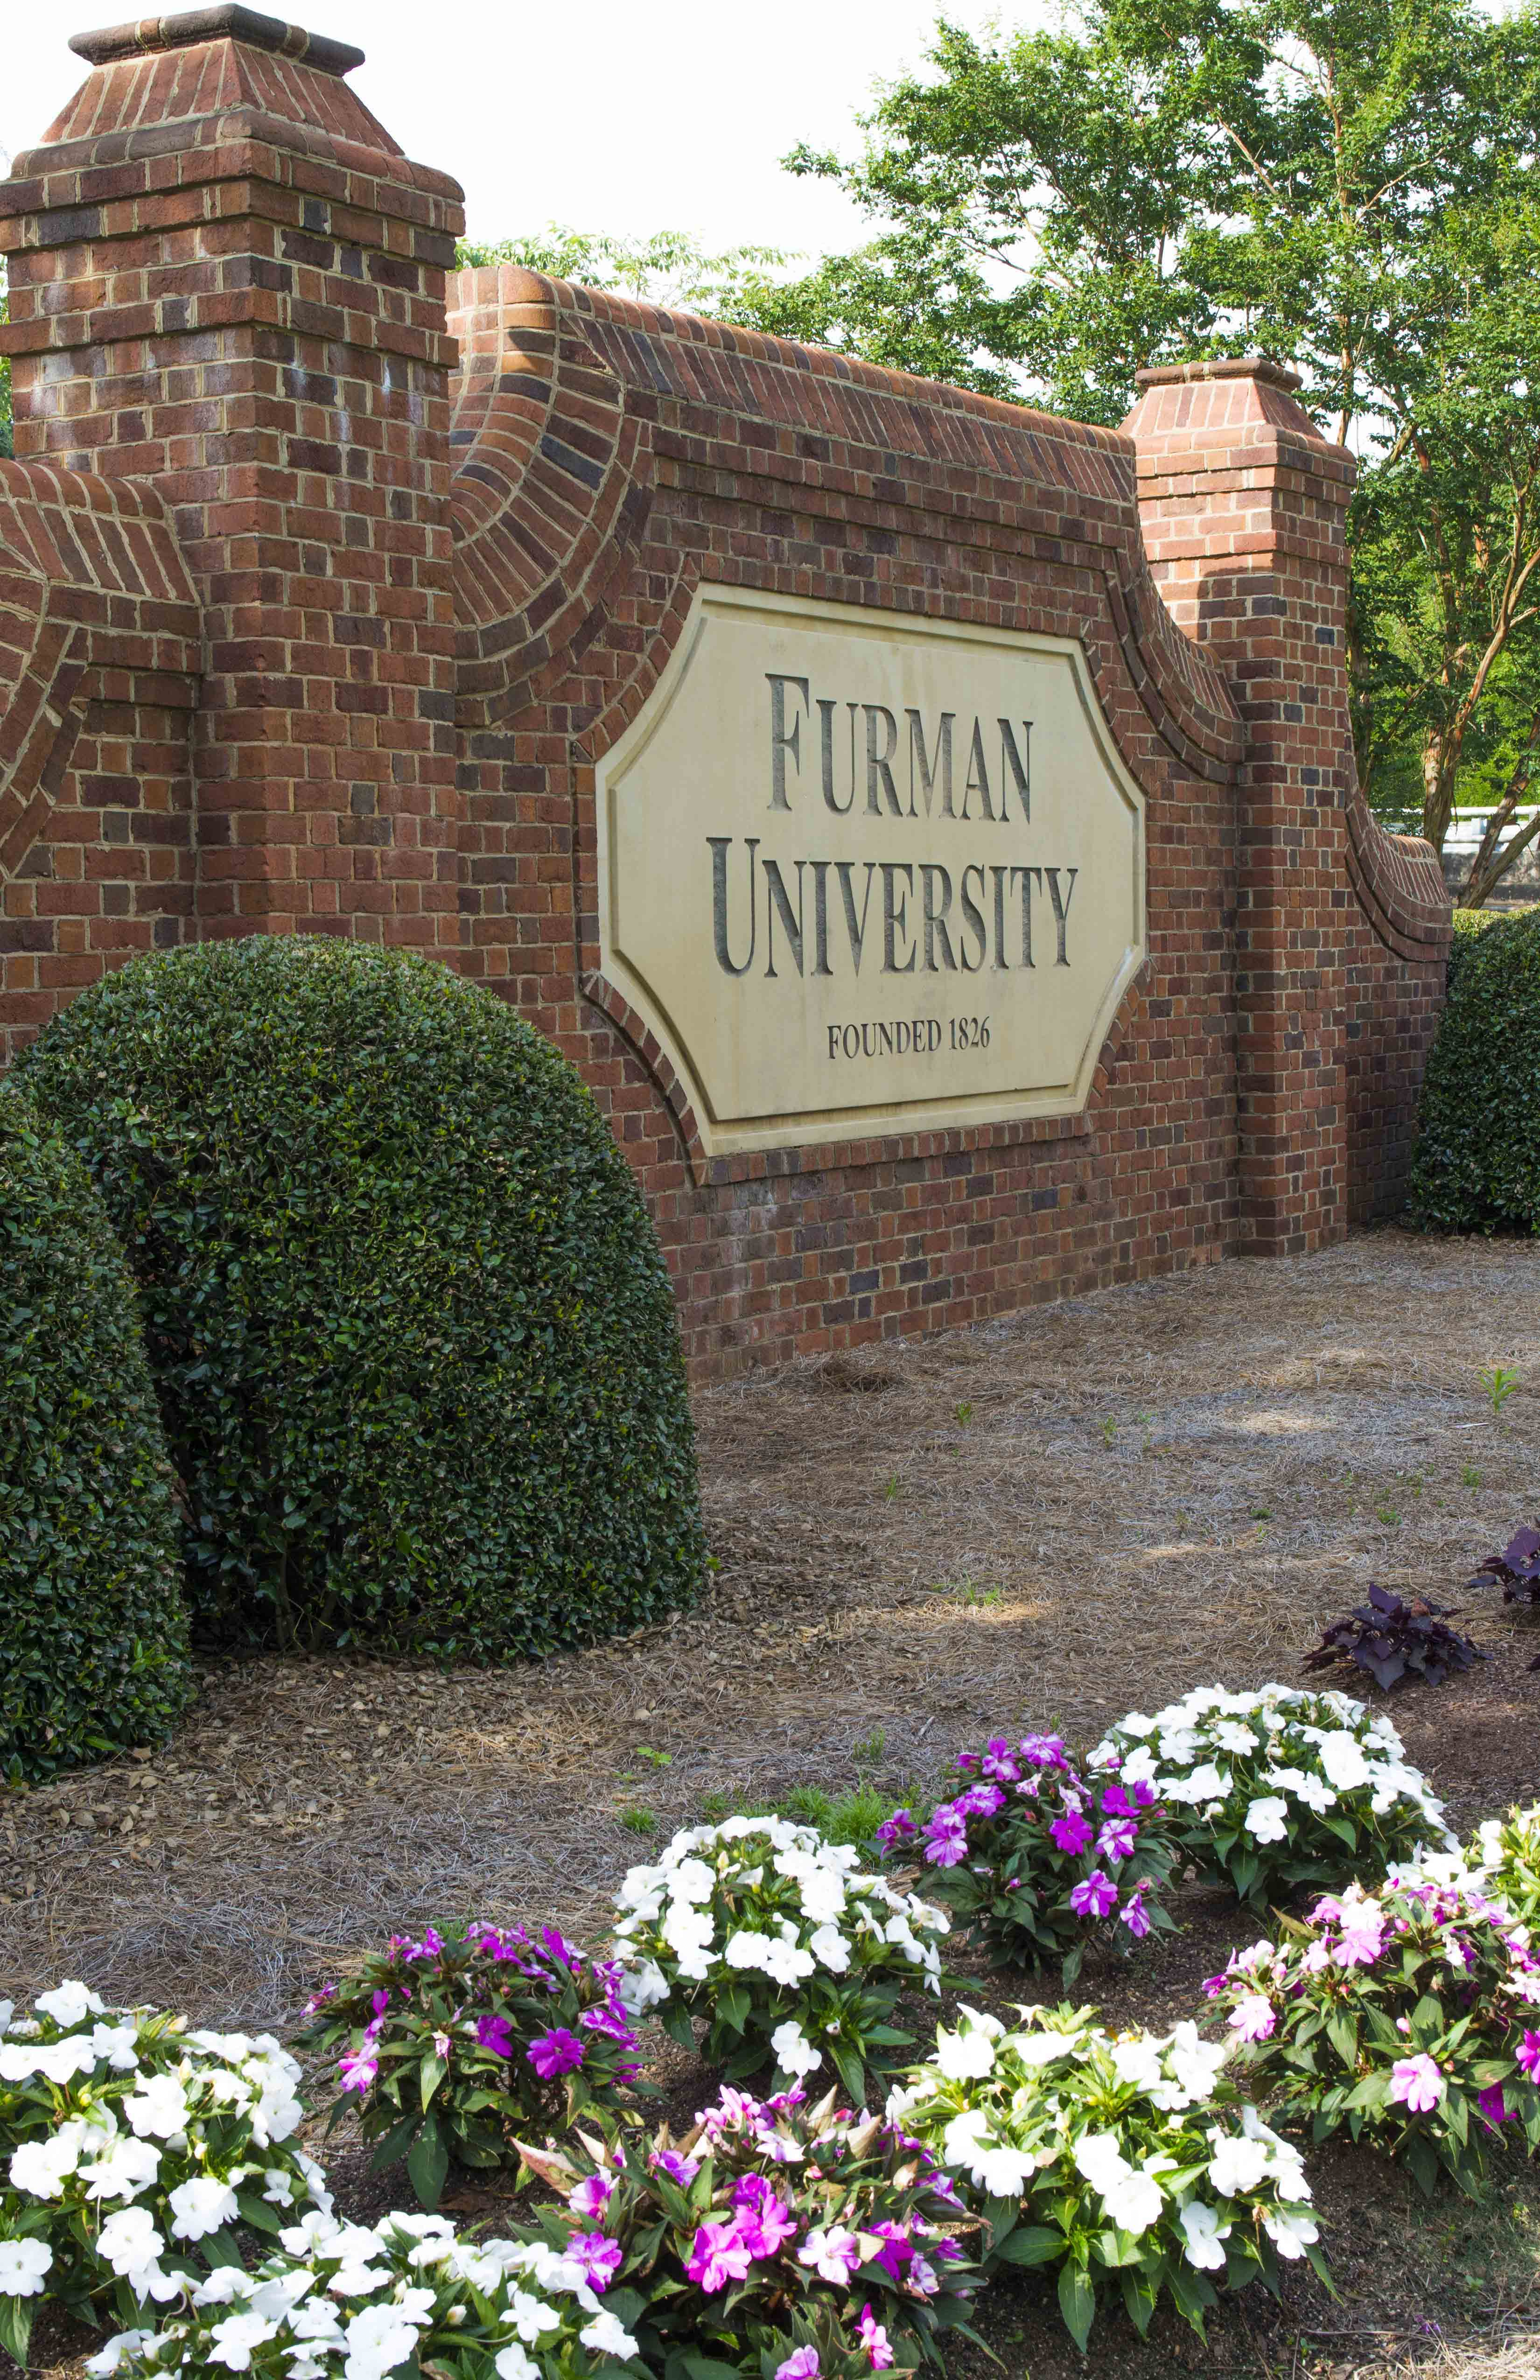 Mark LeFever, president of the South Carolina Independent Colleges and Universities, Inc., said he anticipates schools like Furman University, which is in the SCICU's network, may have to evaluate tuition prices because of the new overtime rule. (Photo: Bill Bachmann/Photoshot/Newscom)